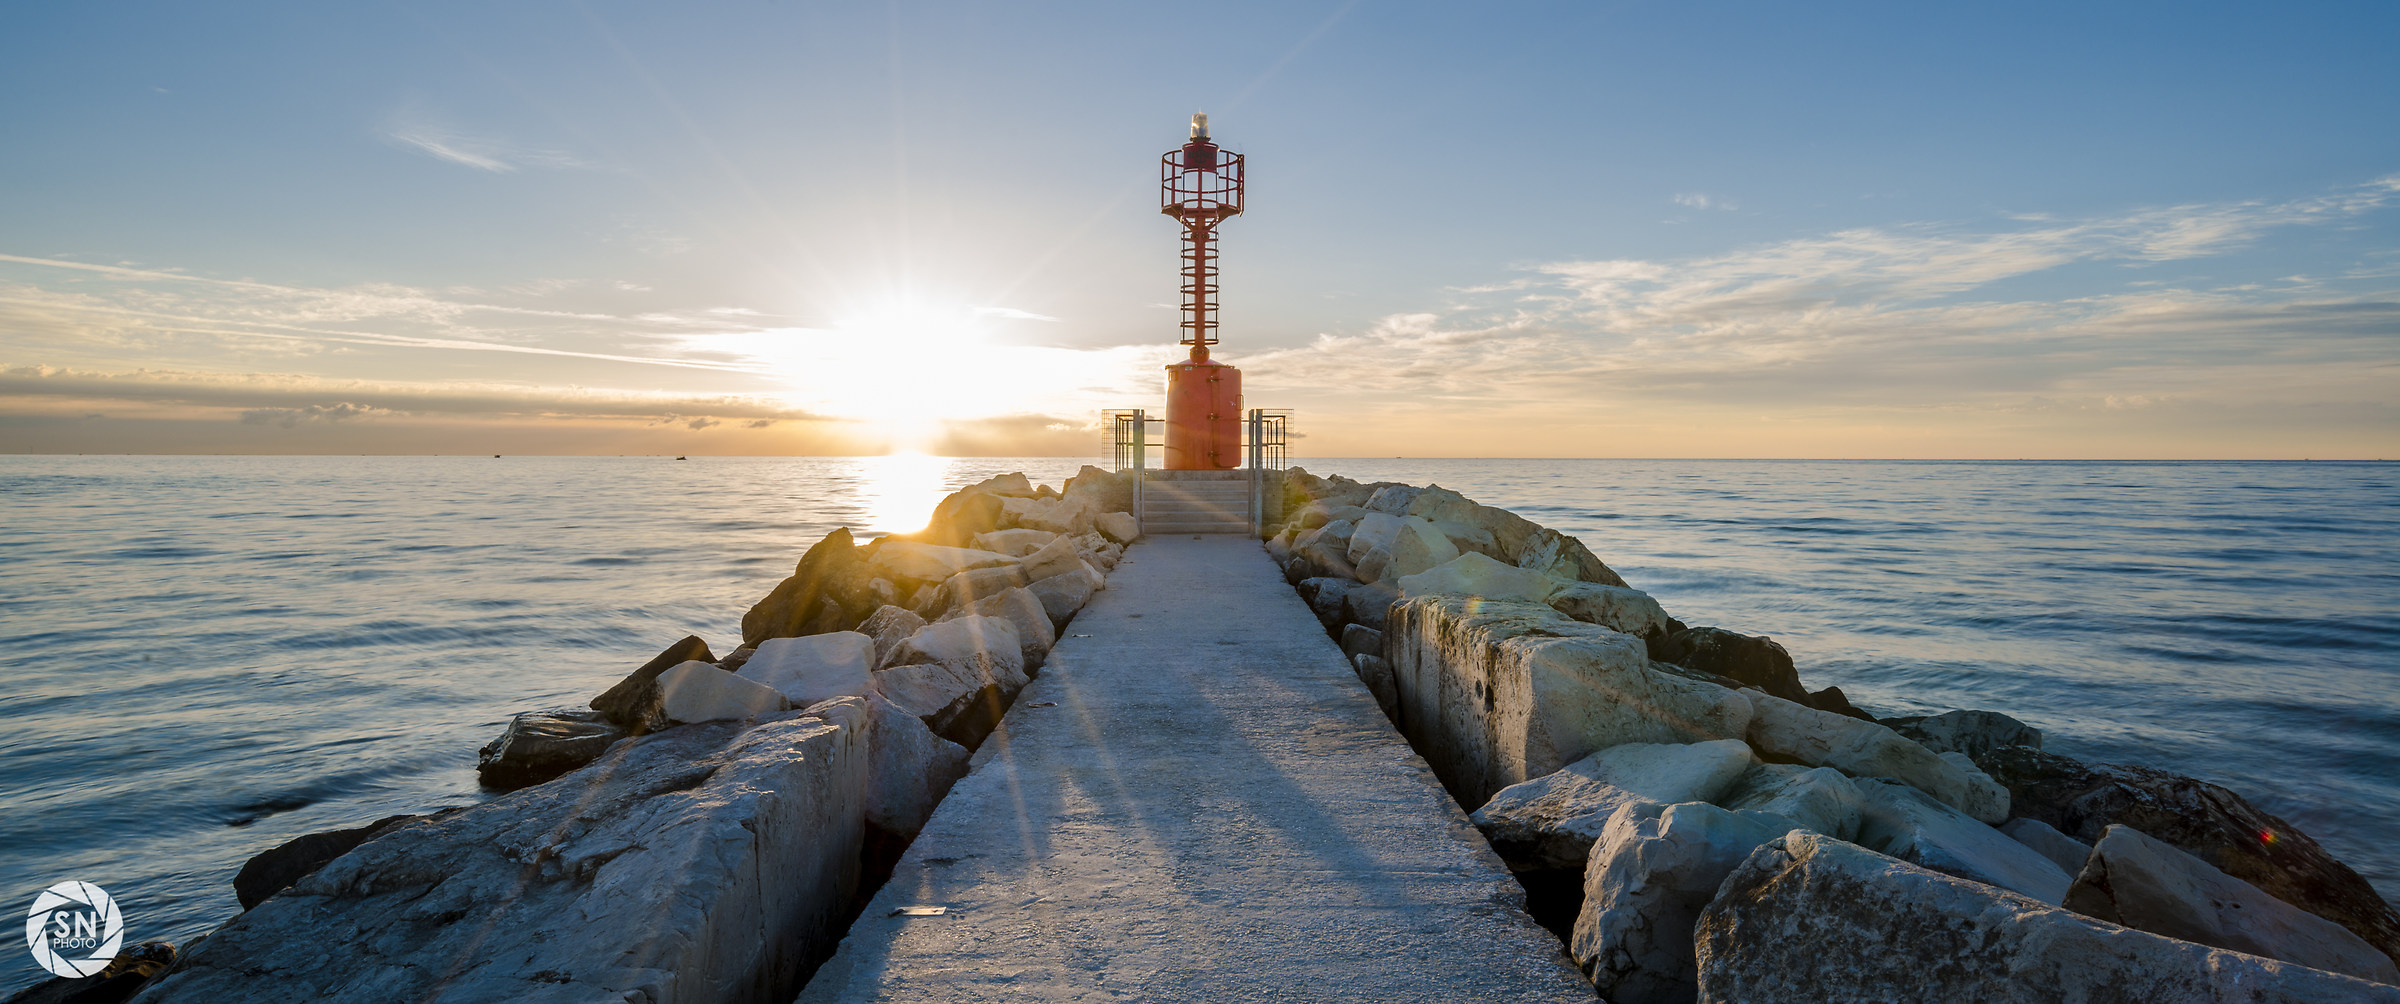 Extension Lido Lighthouse...